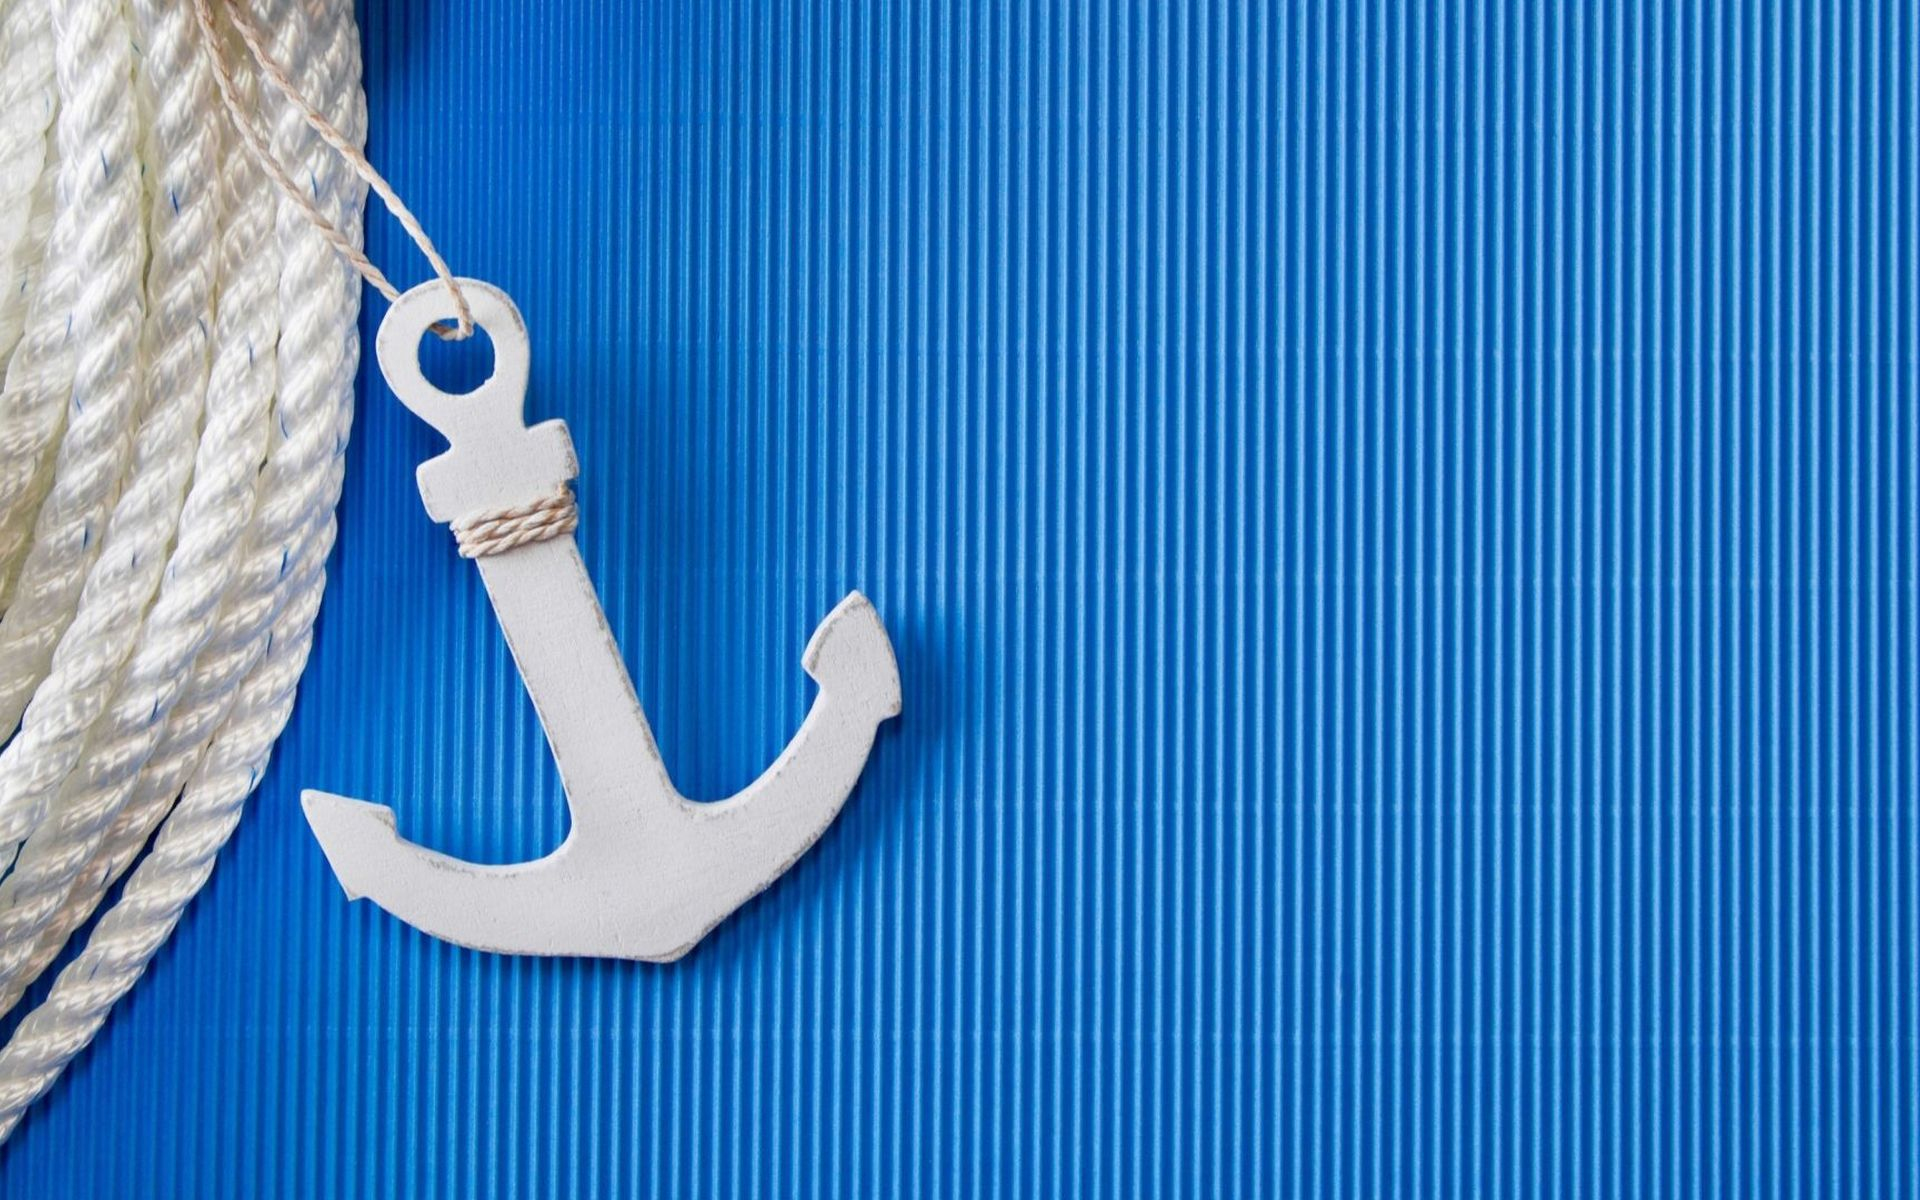 Anchor Computer Wallpaper